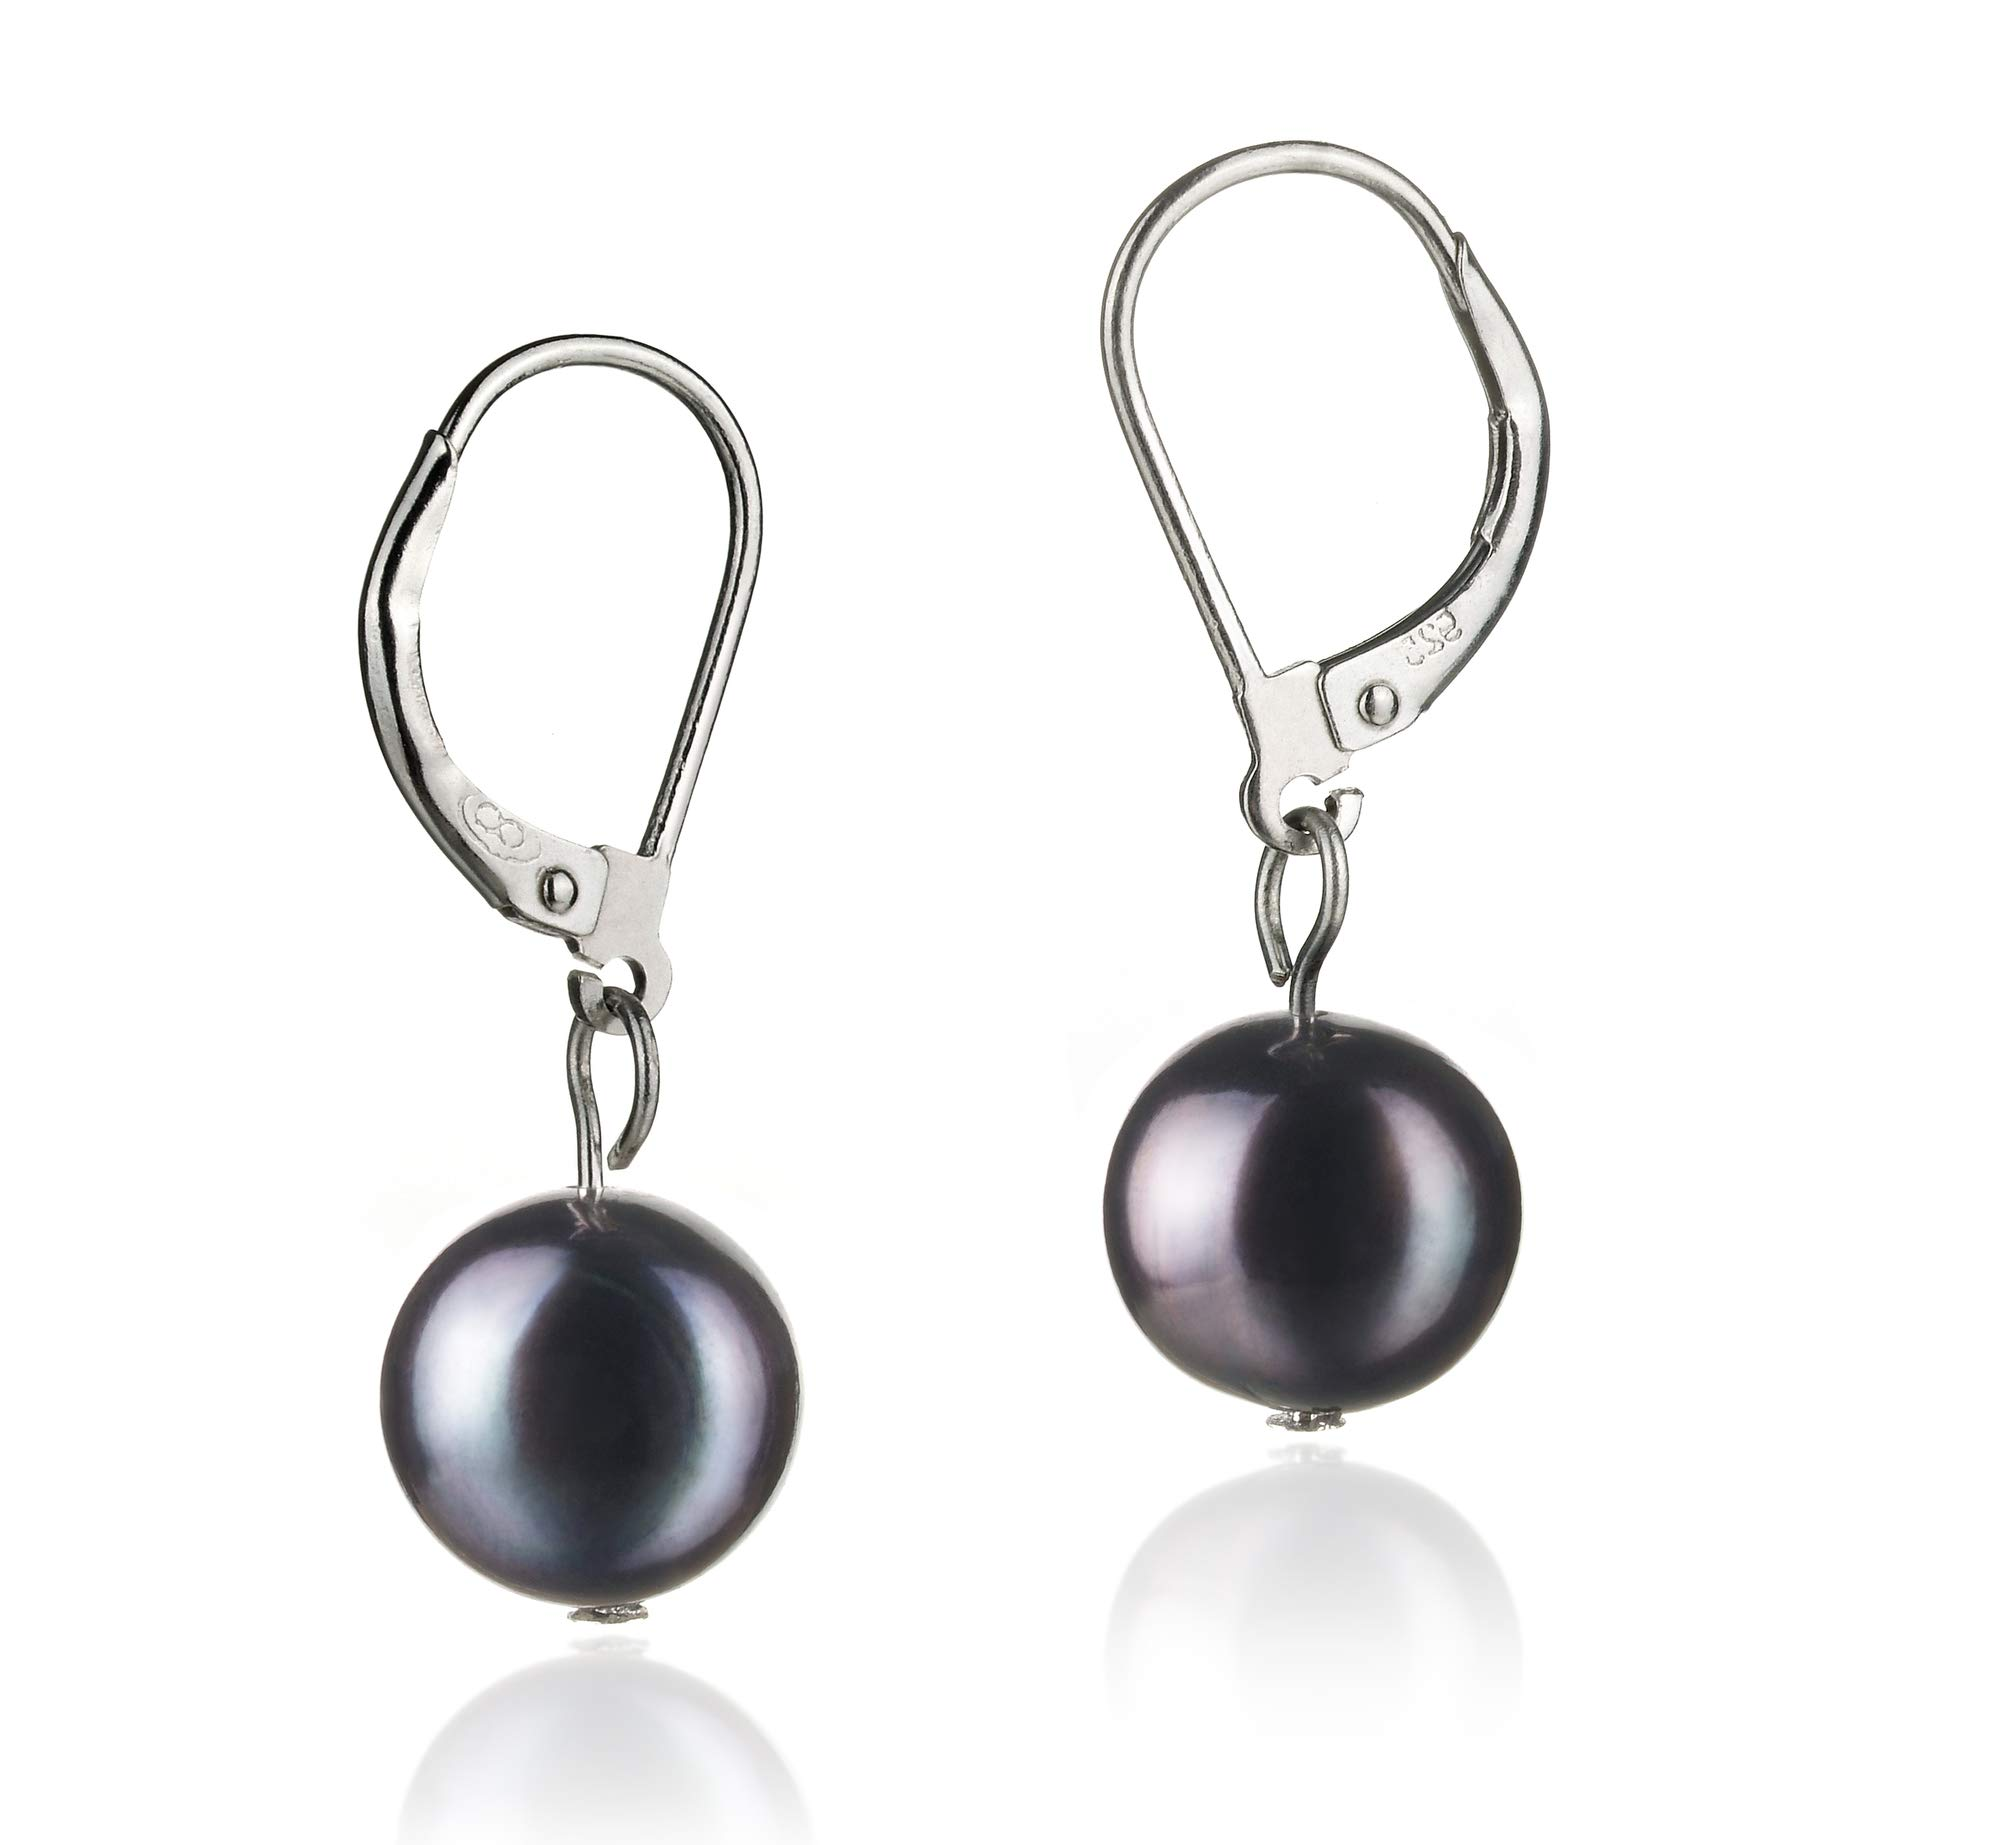 Kaitlyn 8-9mm A Quality Freshwater 925 Sterling Silver Cultured Pearl Earring Pair For Women